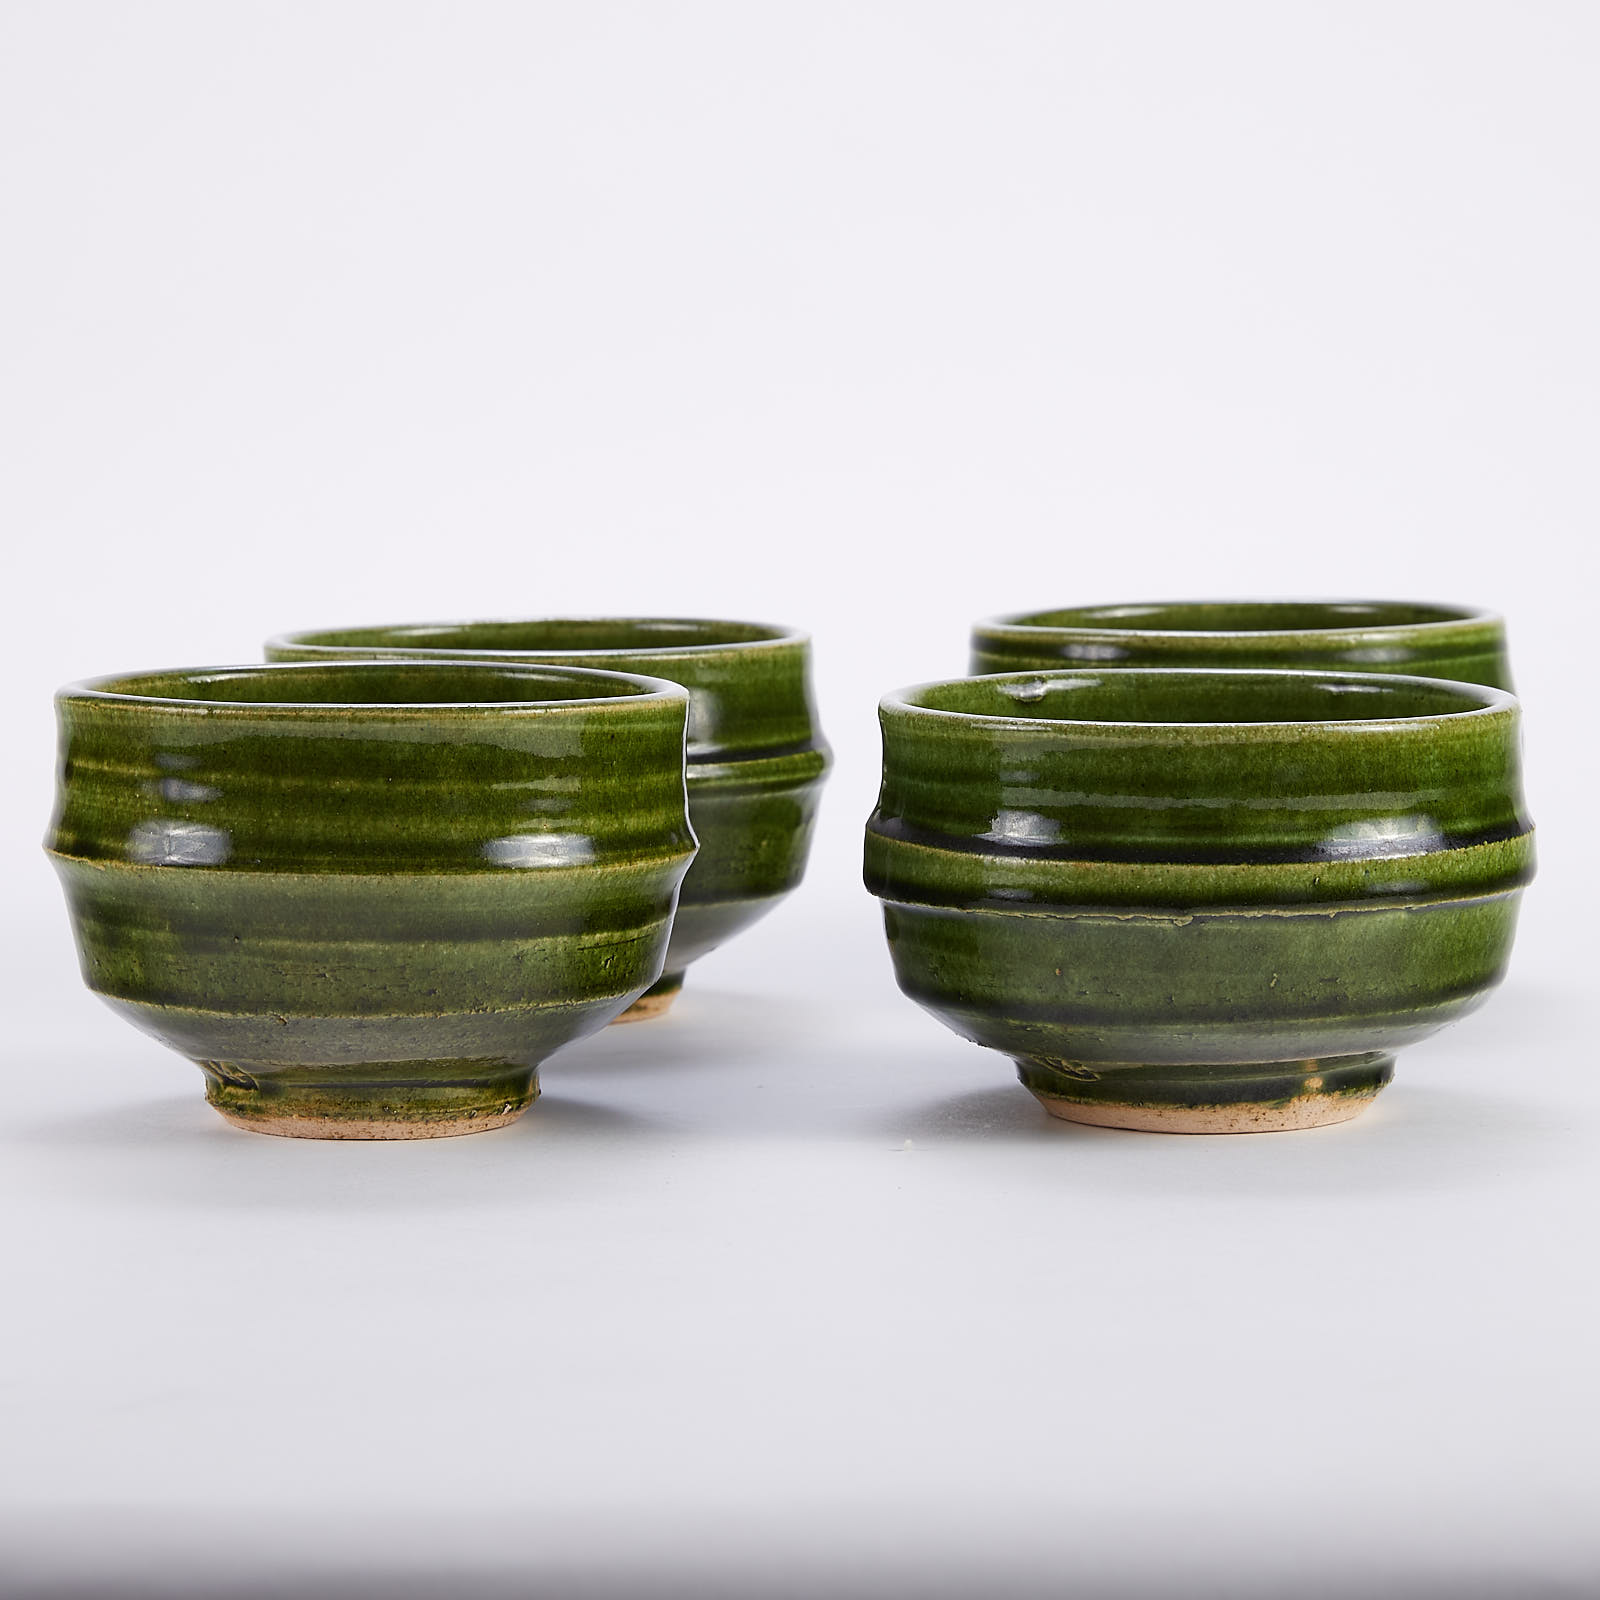 Lot 017: Set of 4 Warren MacKenzie Studio Pottery Bowls Green Glaze Mrkd